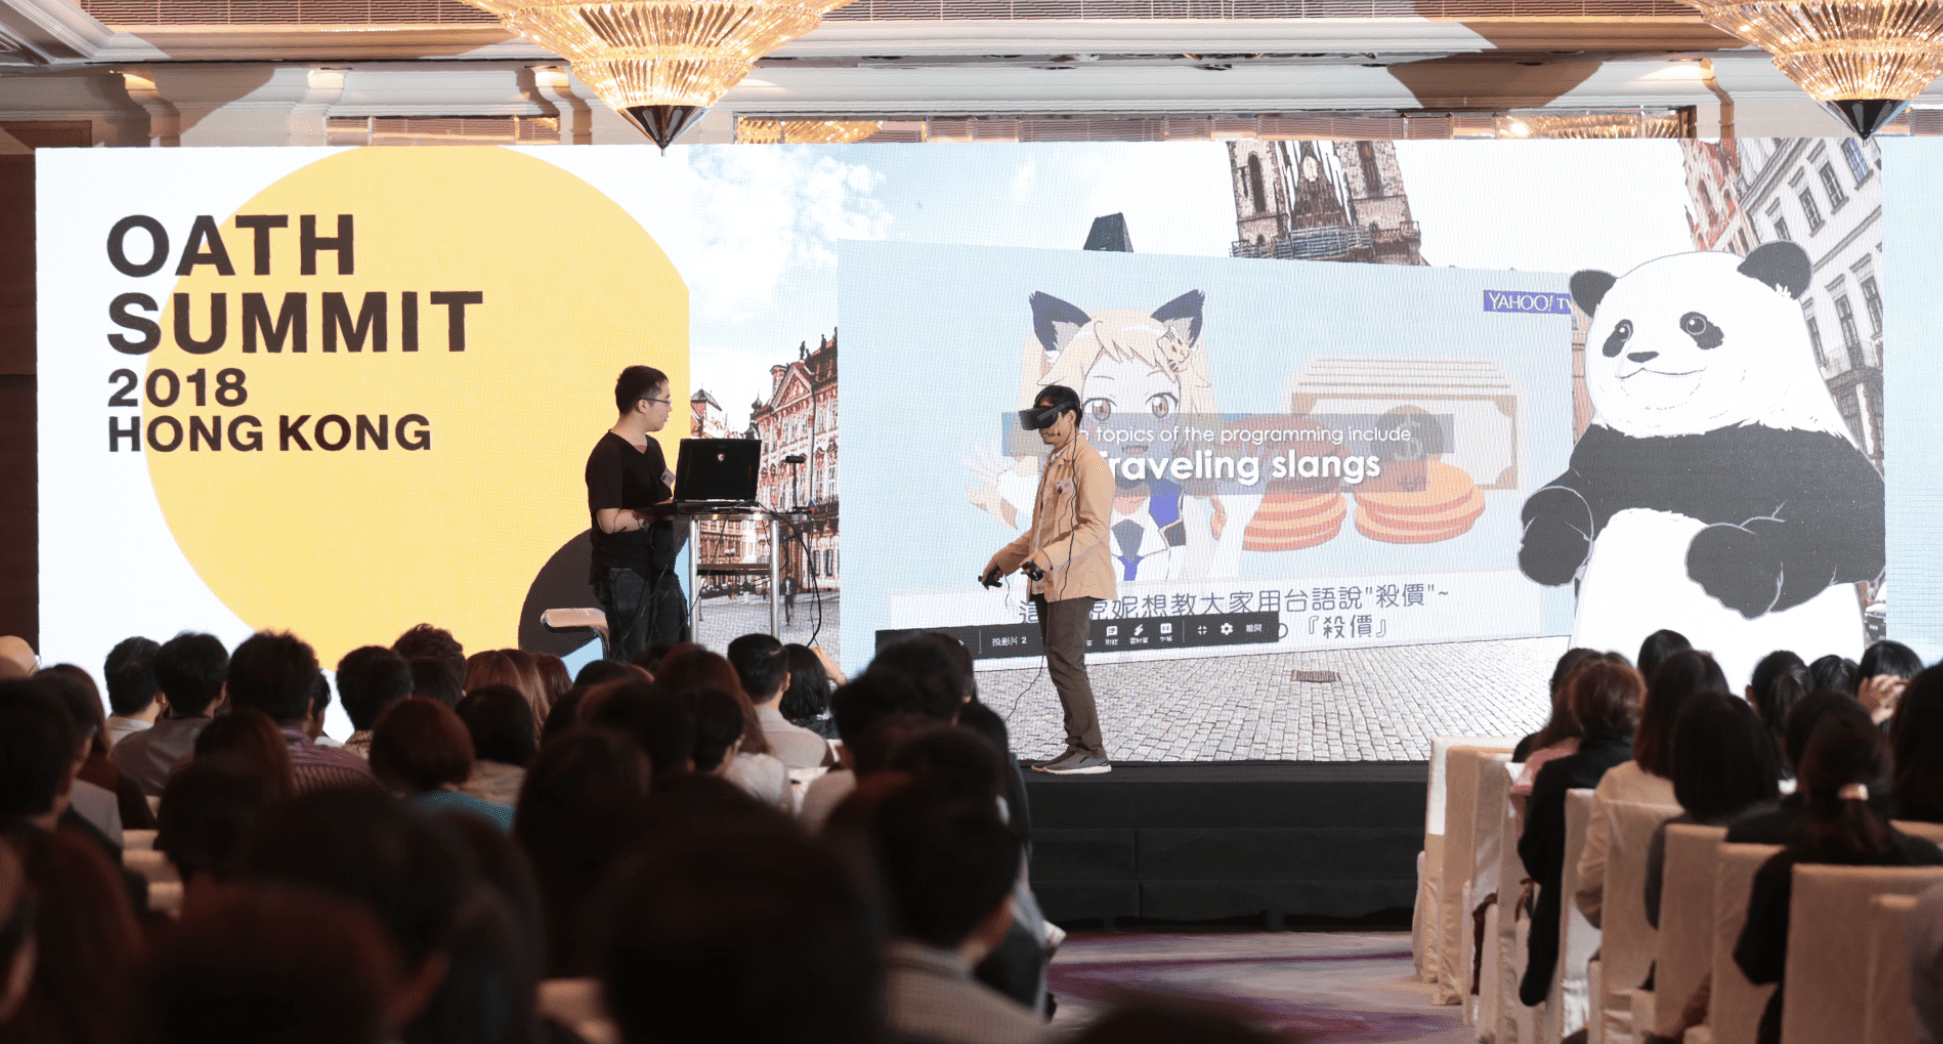 Hoonie at The Oath Summit 2018